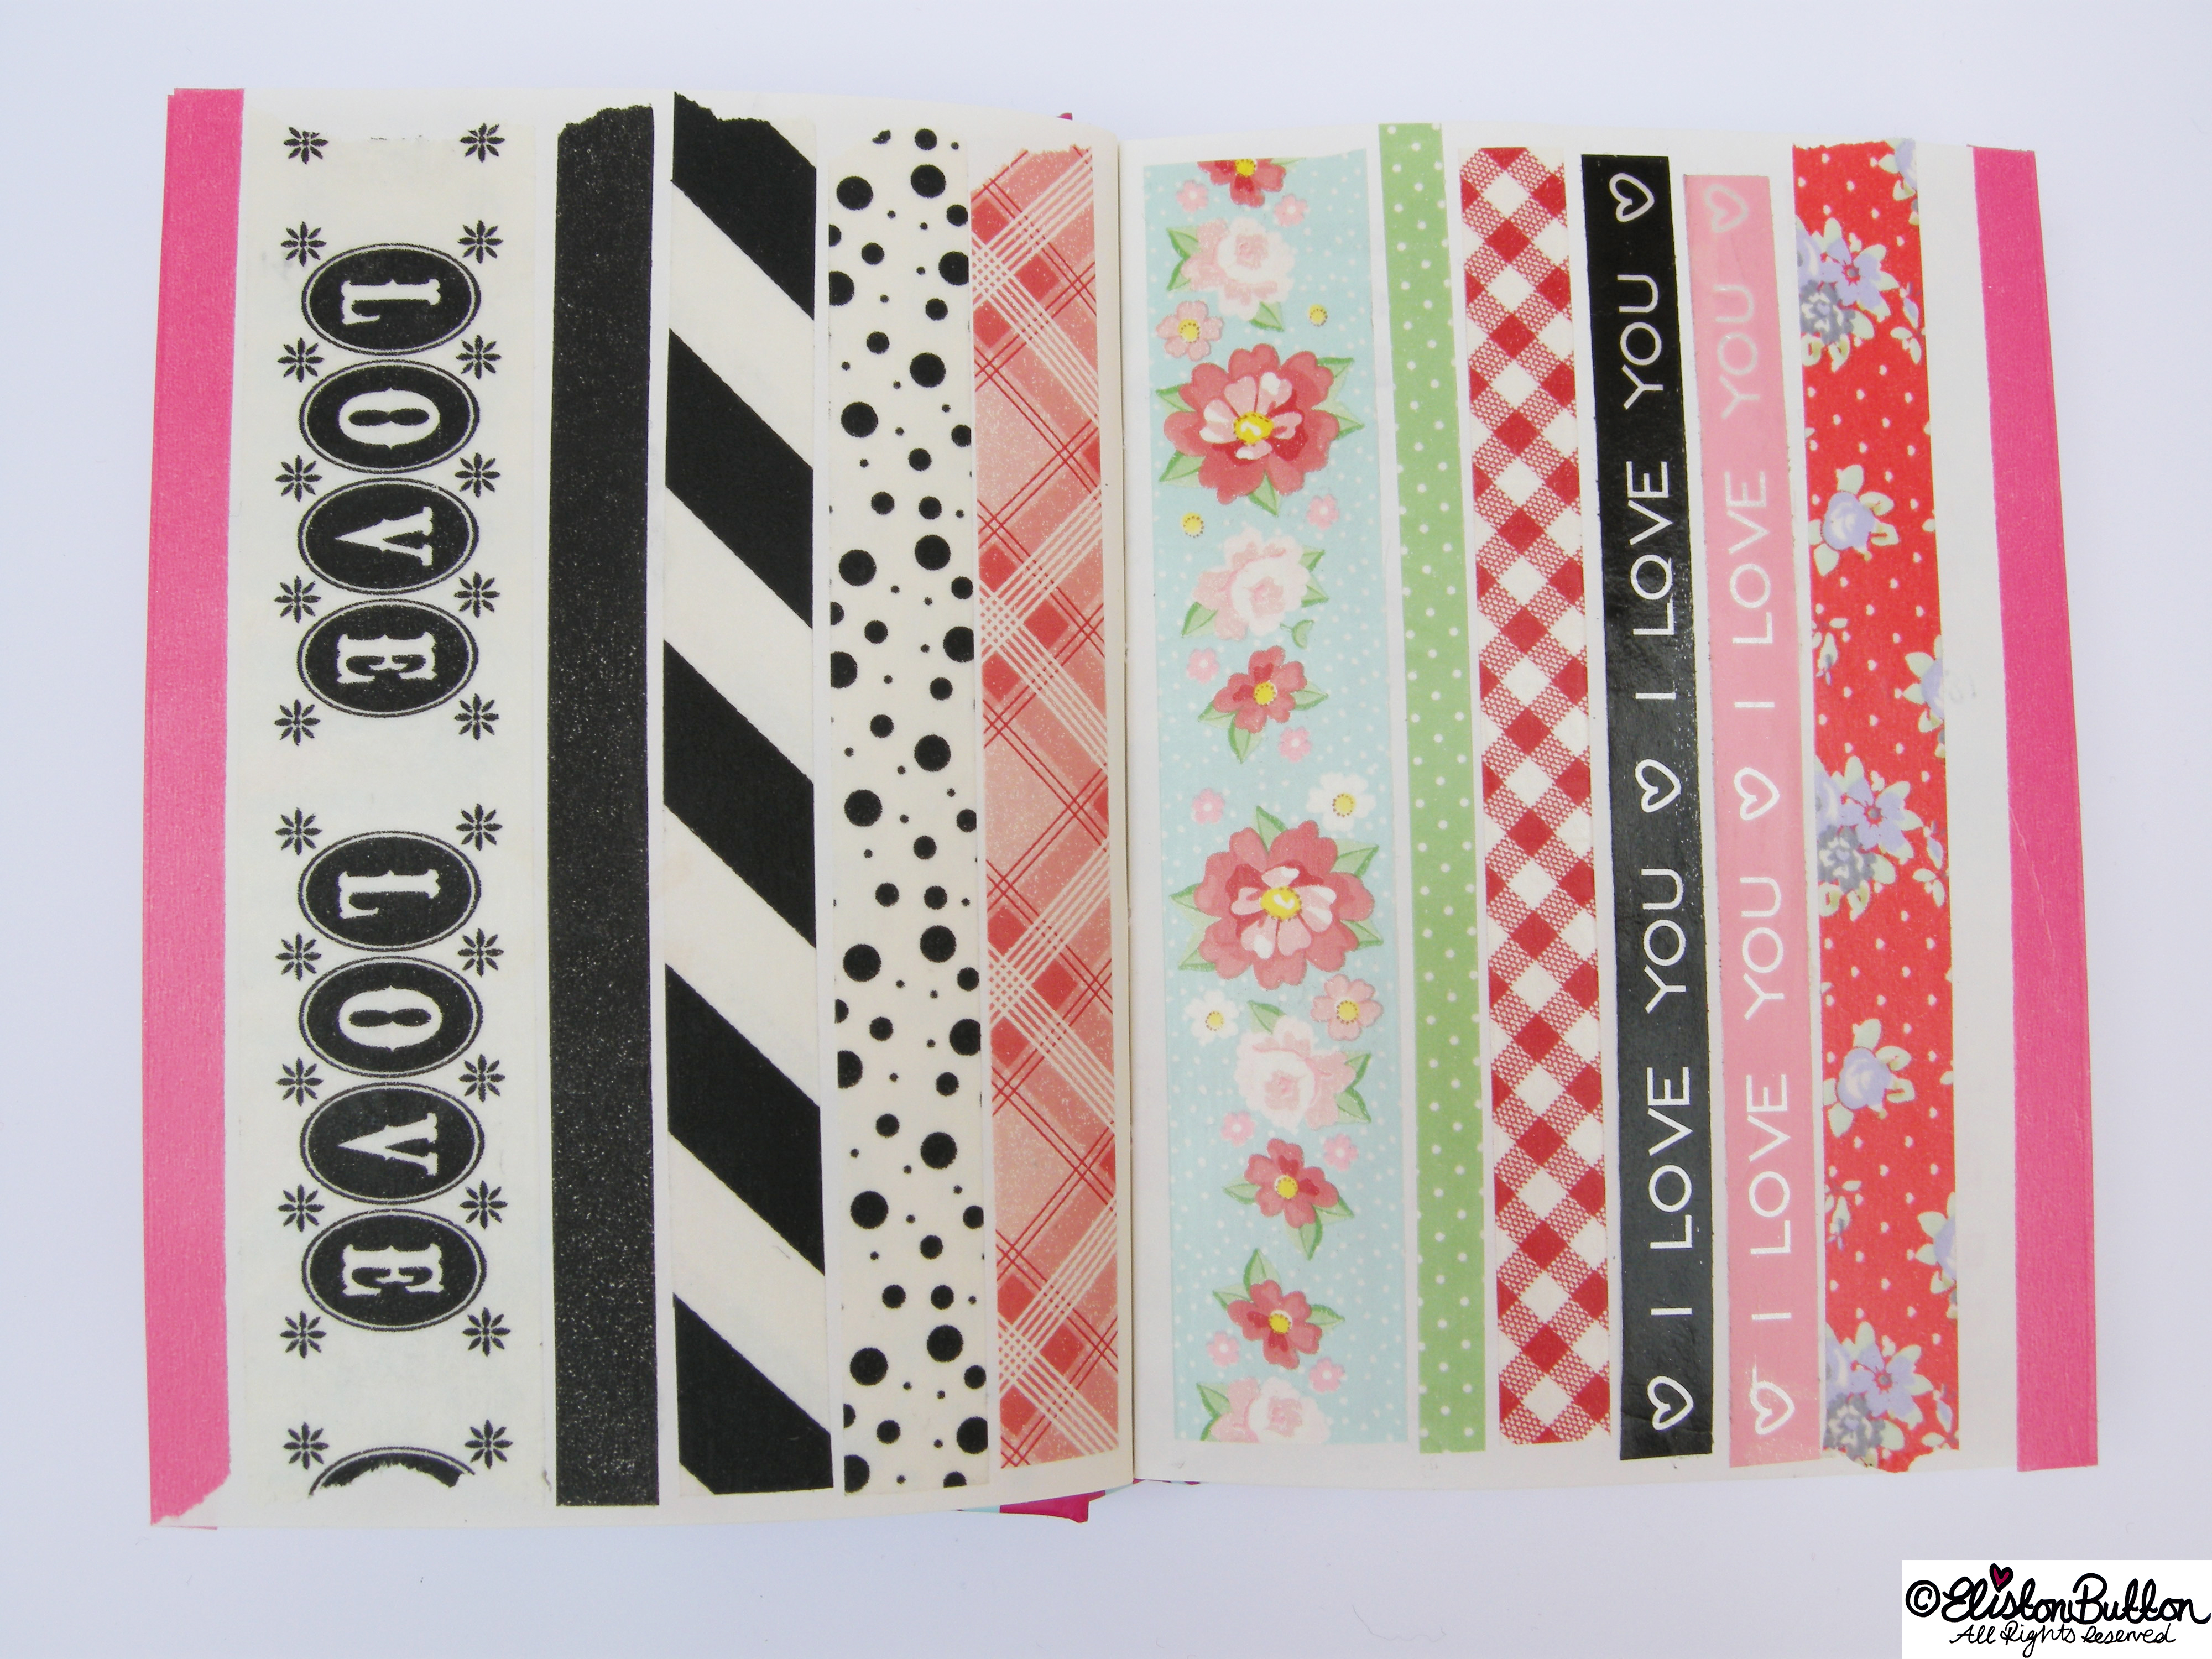 Monochrome and Floral Washi Tapes - My Washi Tape Collection at www.elistonbutton.com - Eliston Button - That Crafty Kid – Art, Design, Craft & Adventure.